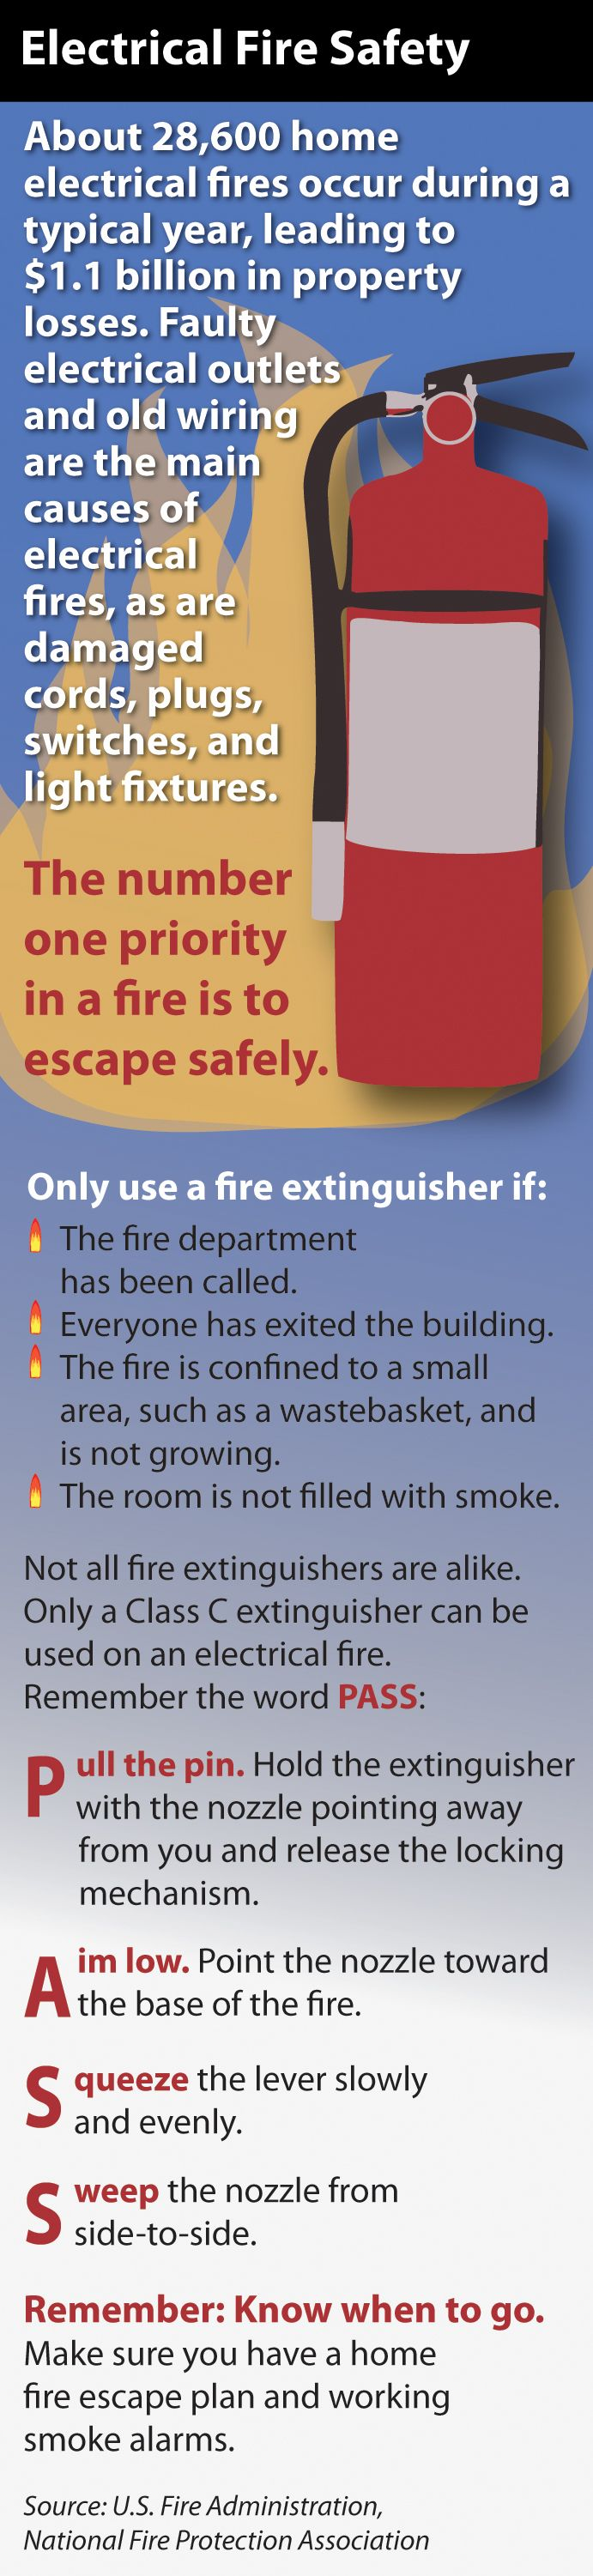 Remember the word PASS when operating a fireextinguisher